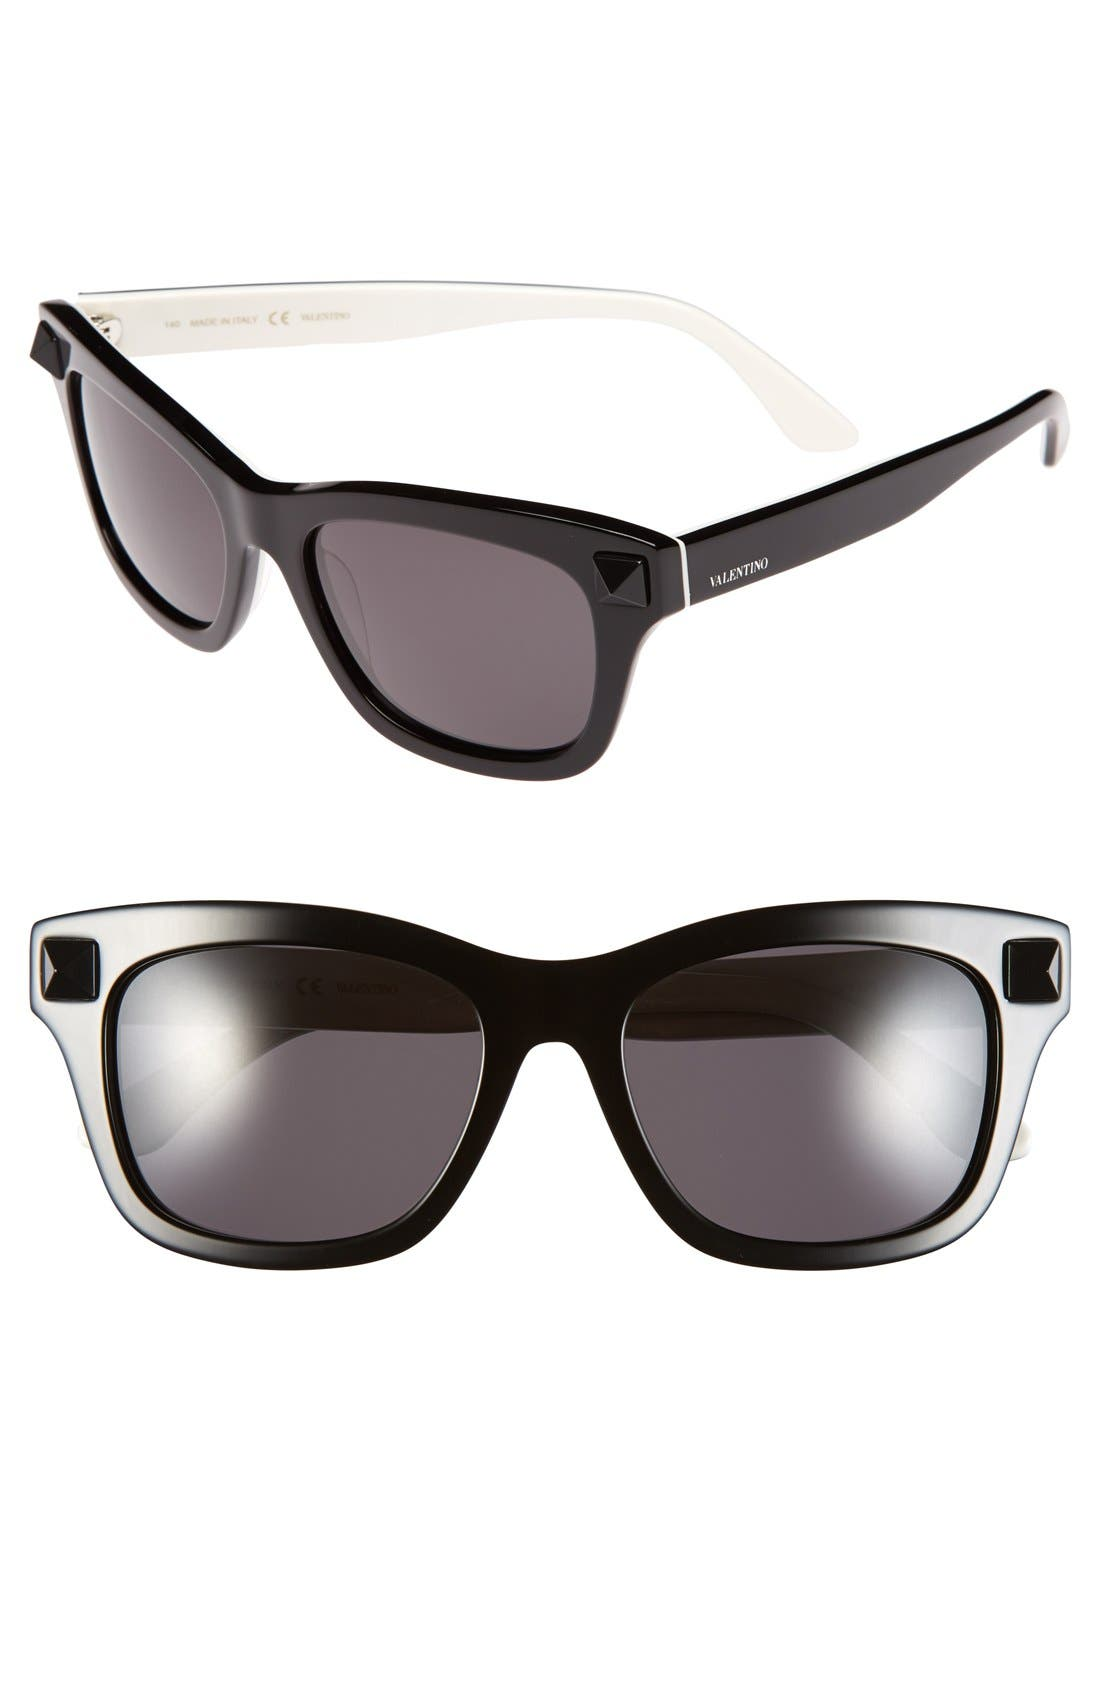 VALENTINO,                             'Rockstud' 53mm Retro Sunglasses,                             Main thumbnail 1, color,                             001